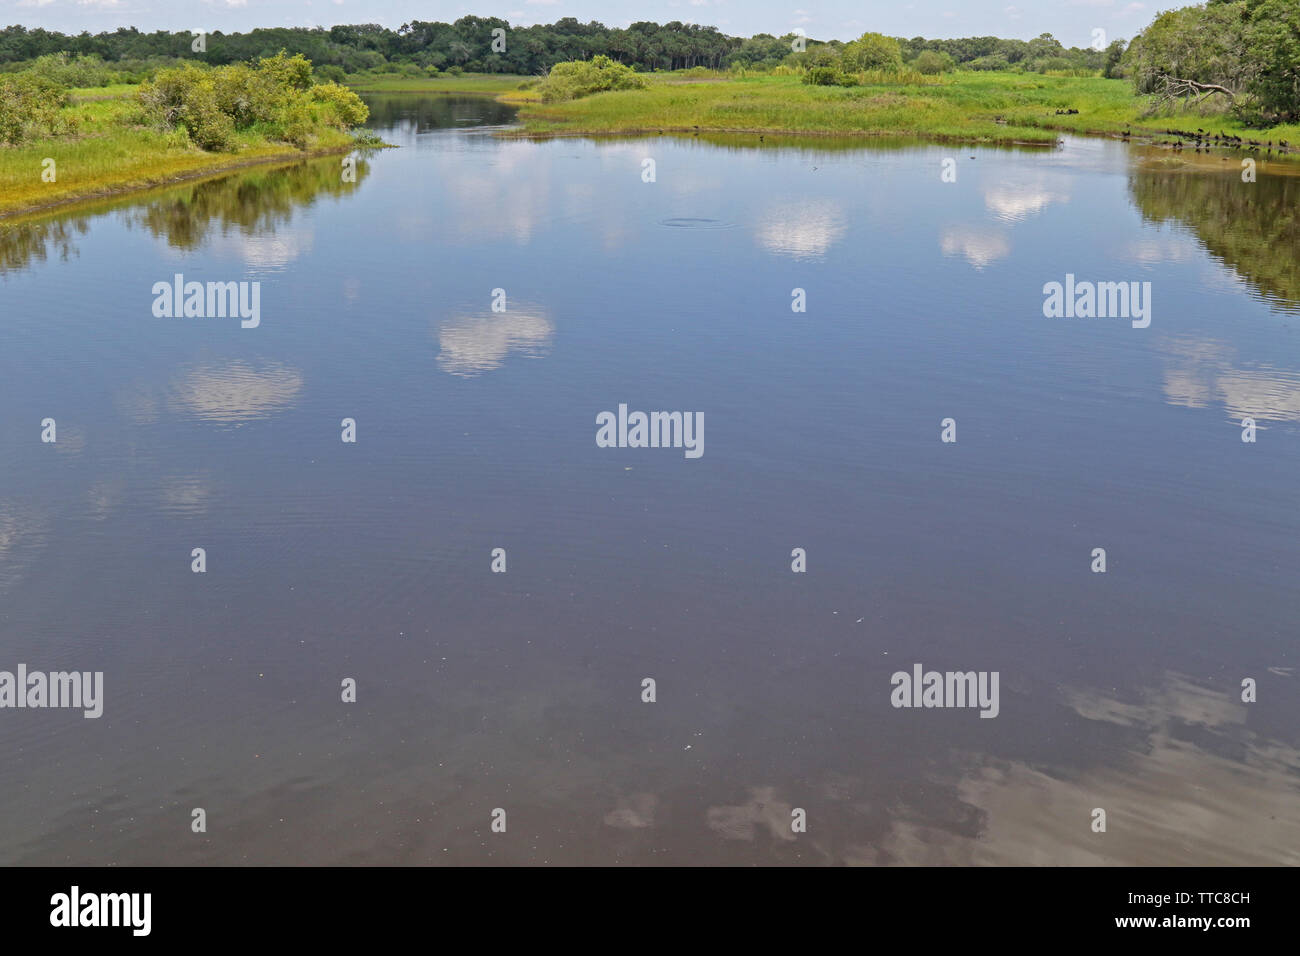 Water reflections of clouds at Myakka River State Park Florida. - Stock Image